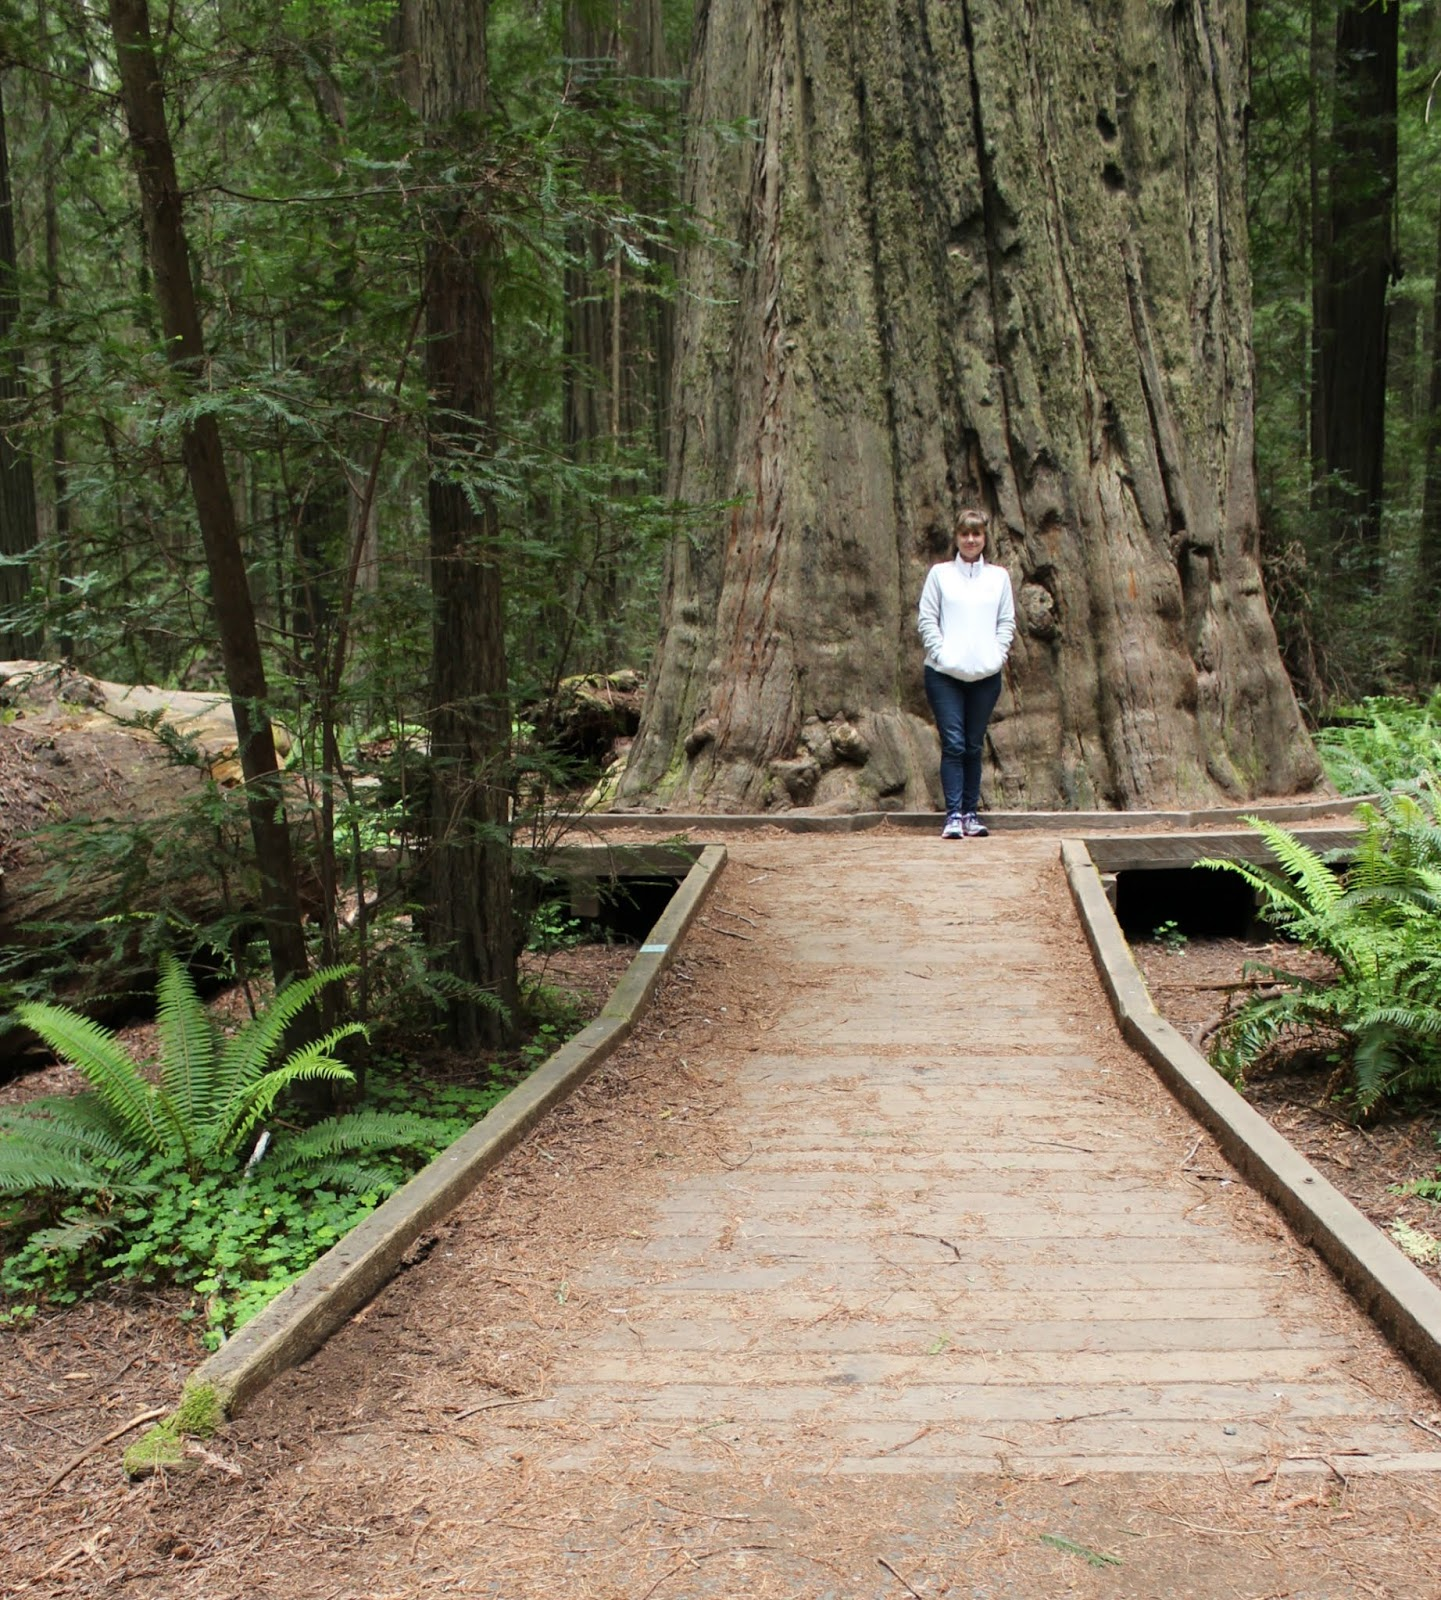 Humboldt Redwoods - Avenue of the Giants - Redwood Trees - bucket list trip